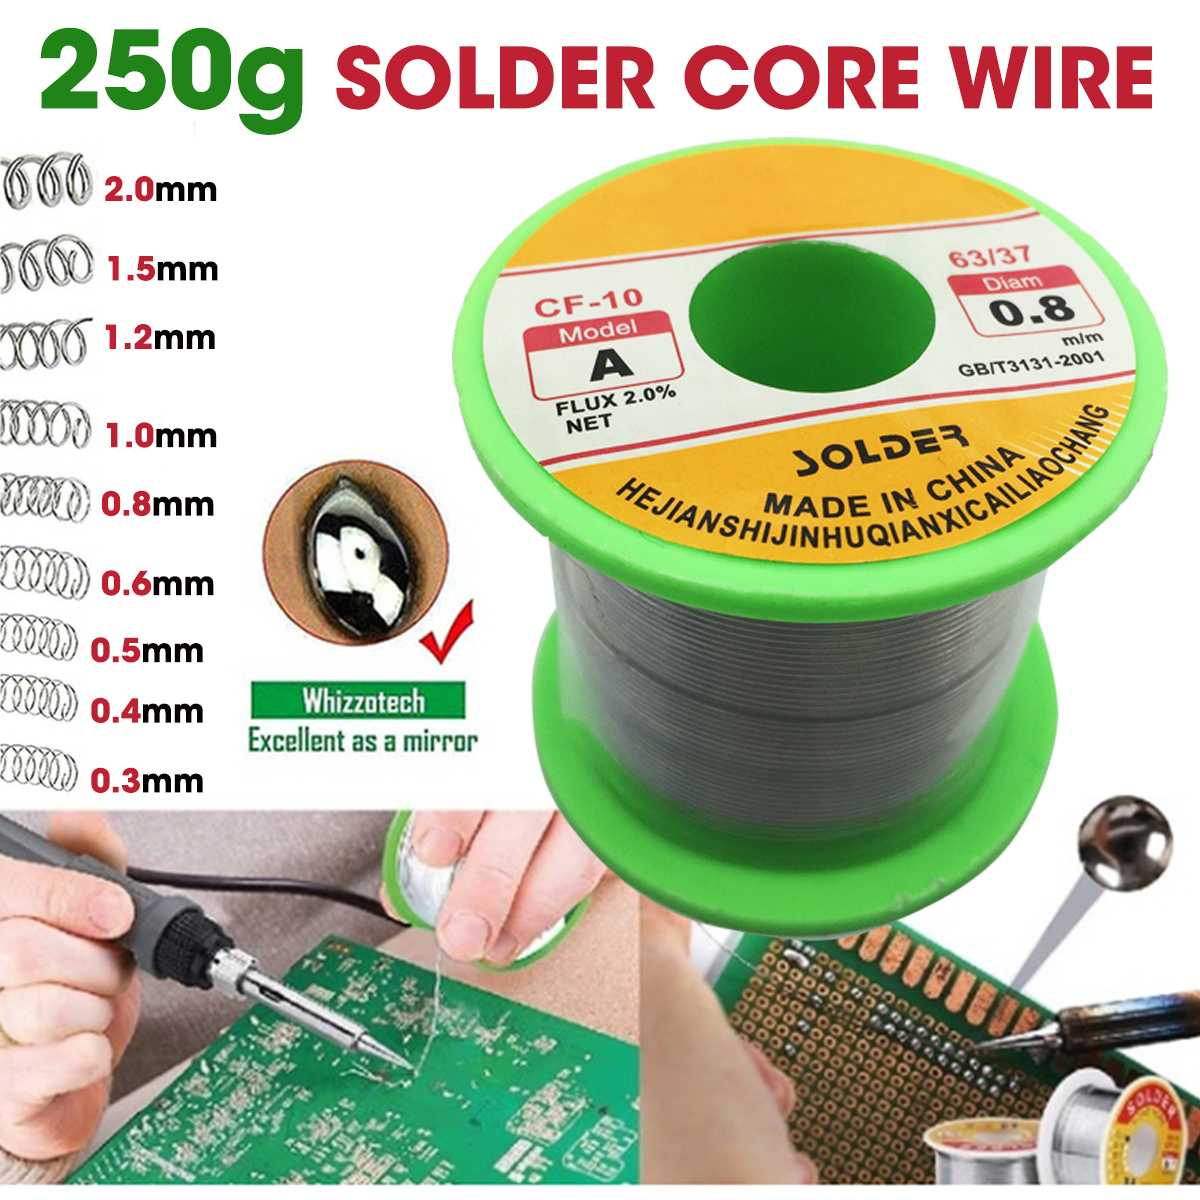 250g One Roll 63/37 Tin Lead Line Soldering 0.3/0.4/0.5/0.6/0.8/1.0/1.2/1.5/2.0mm Solder Wire Reel Soldering Tools